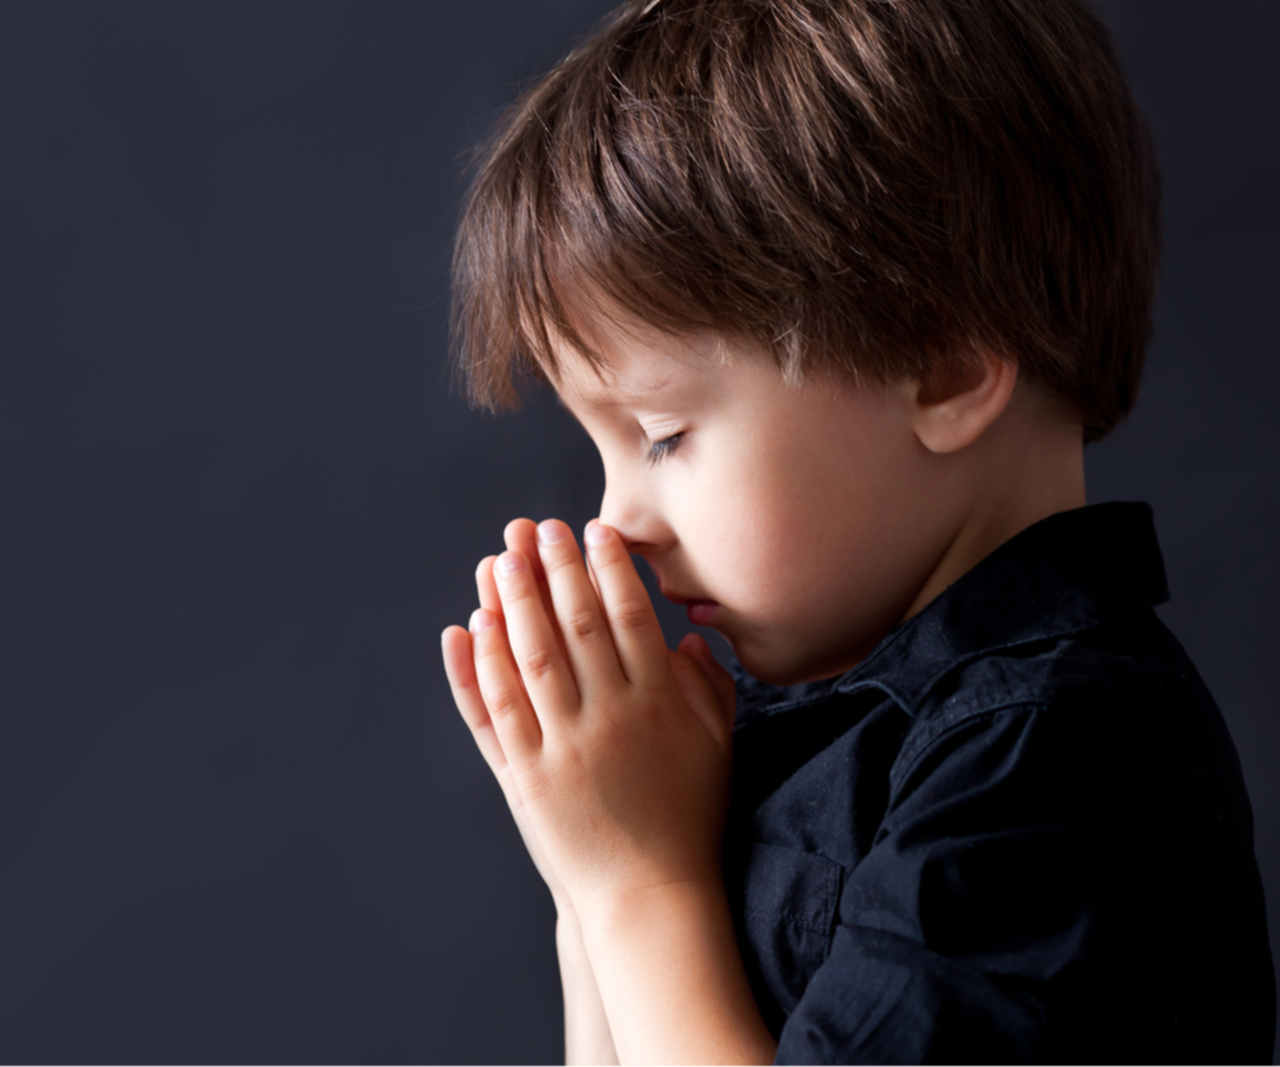 Children's ministry, little boy praying